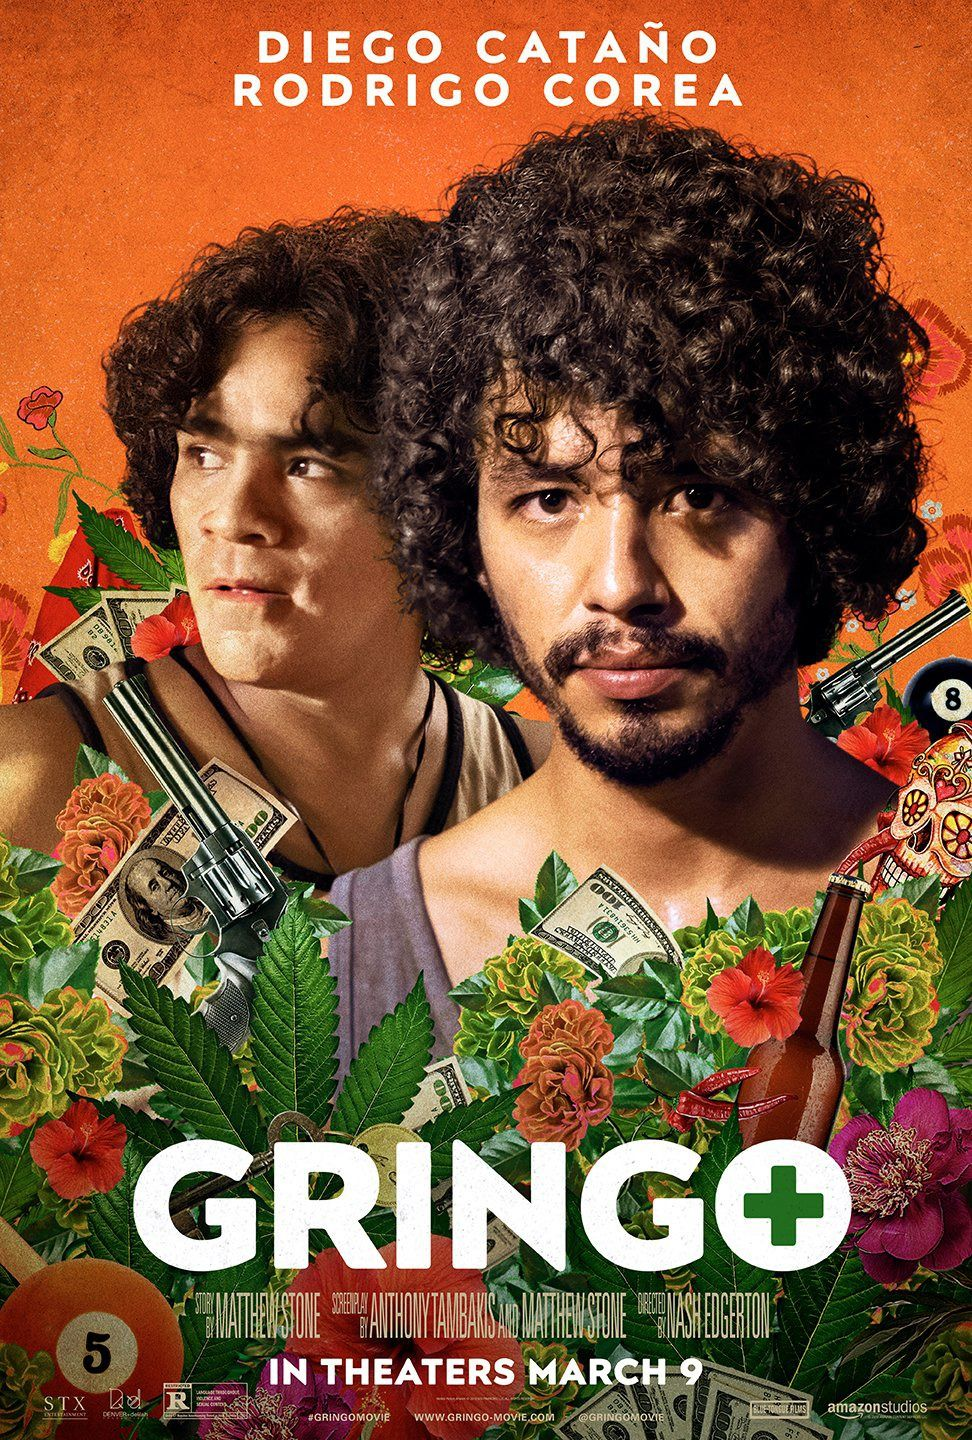 Gringo Movie In 2018 Pinterest Movie Posters Hd Movies And Movies